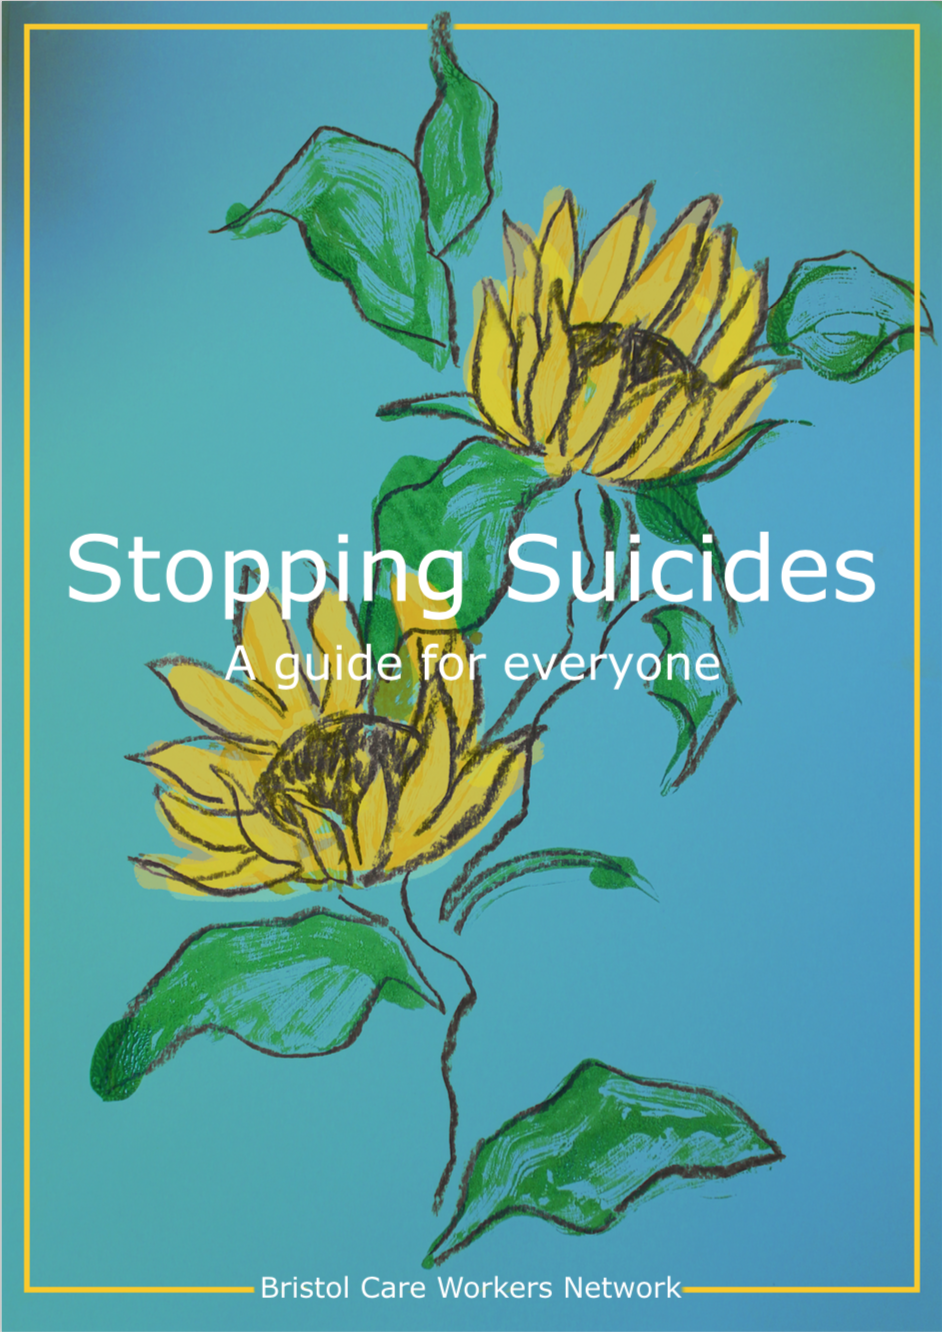 Stopping Suicides Cover Illustration